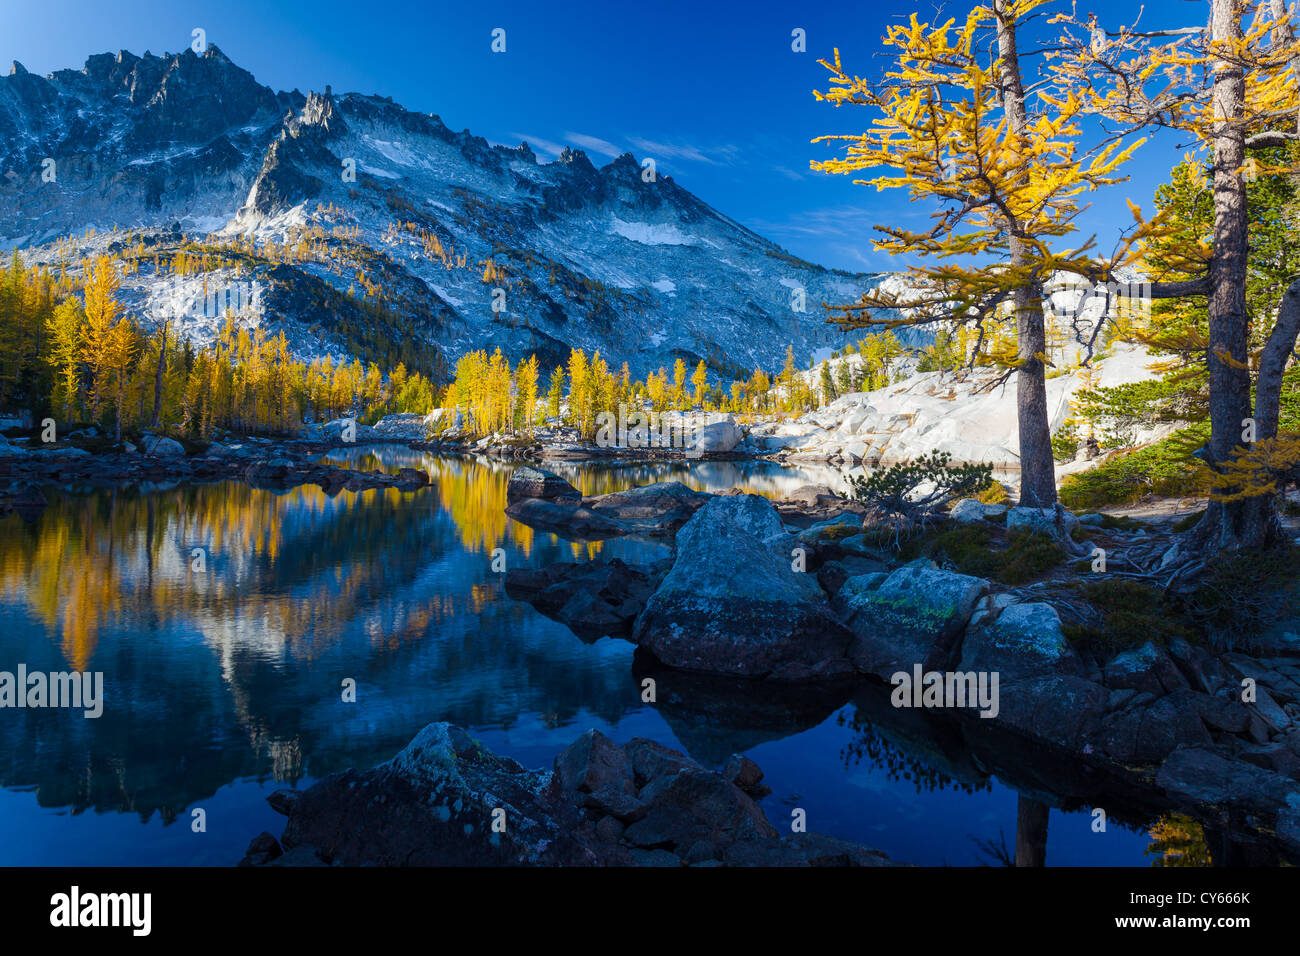 Tamaracks reflecting in Lake Leprechaun in Washington's Enchantment Lakes wilderness area - Stock Image